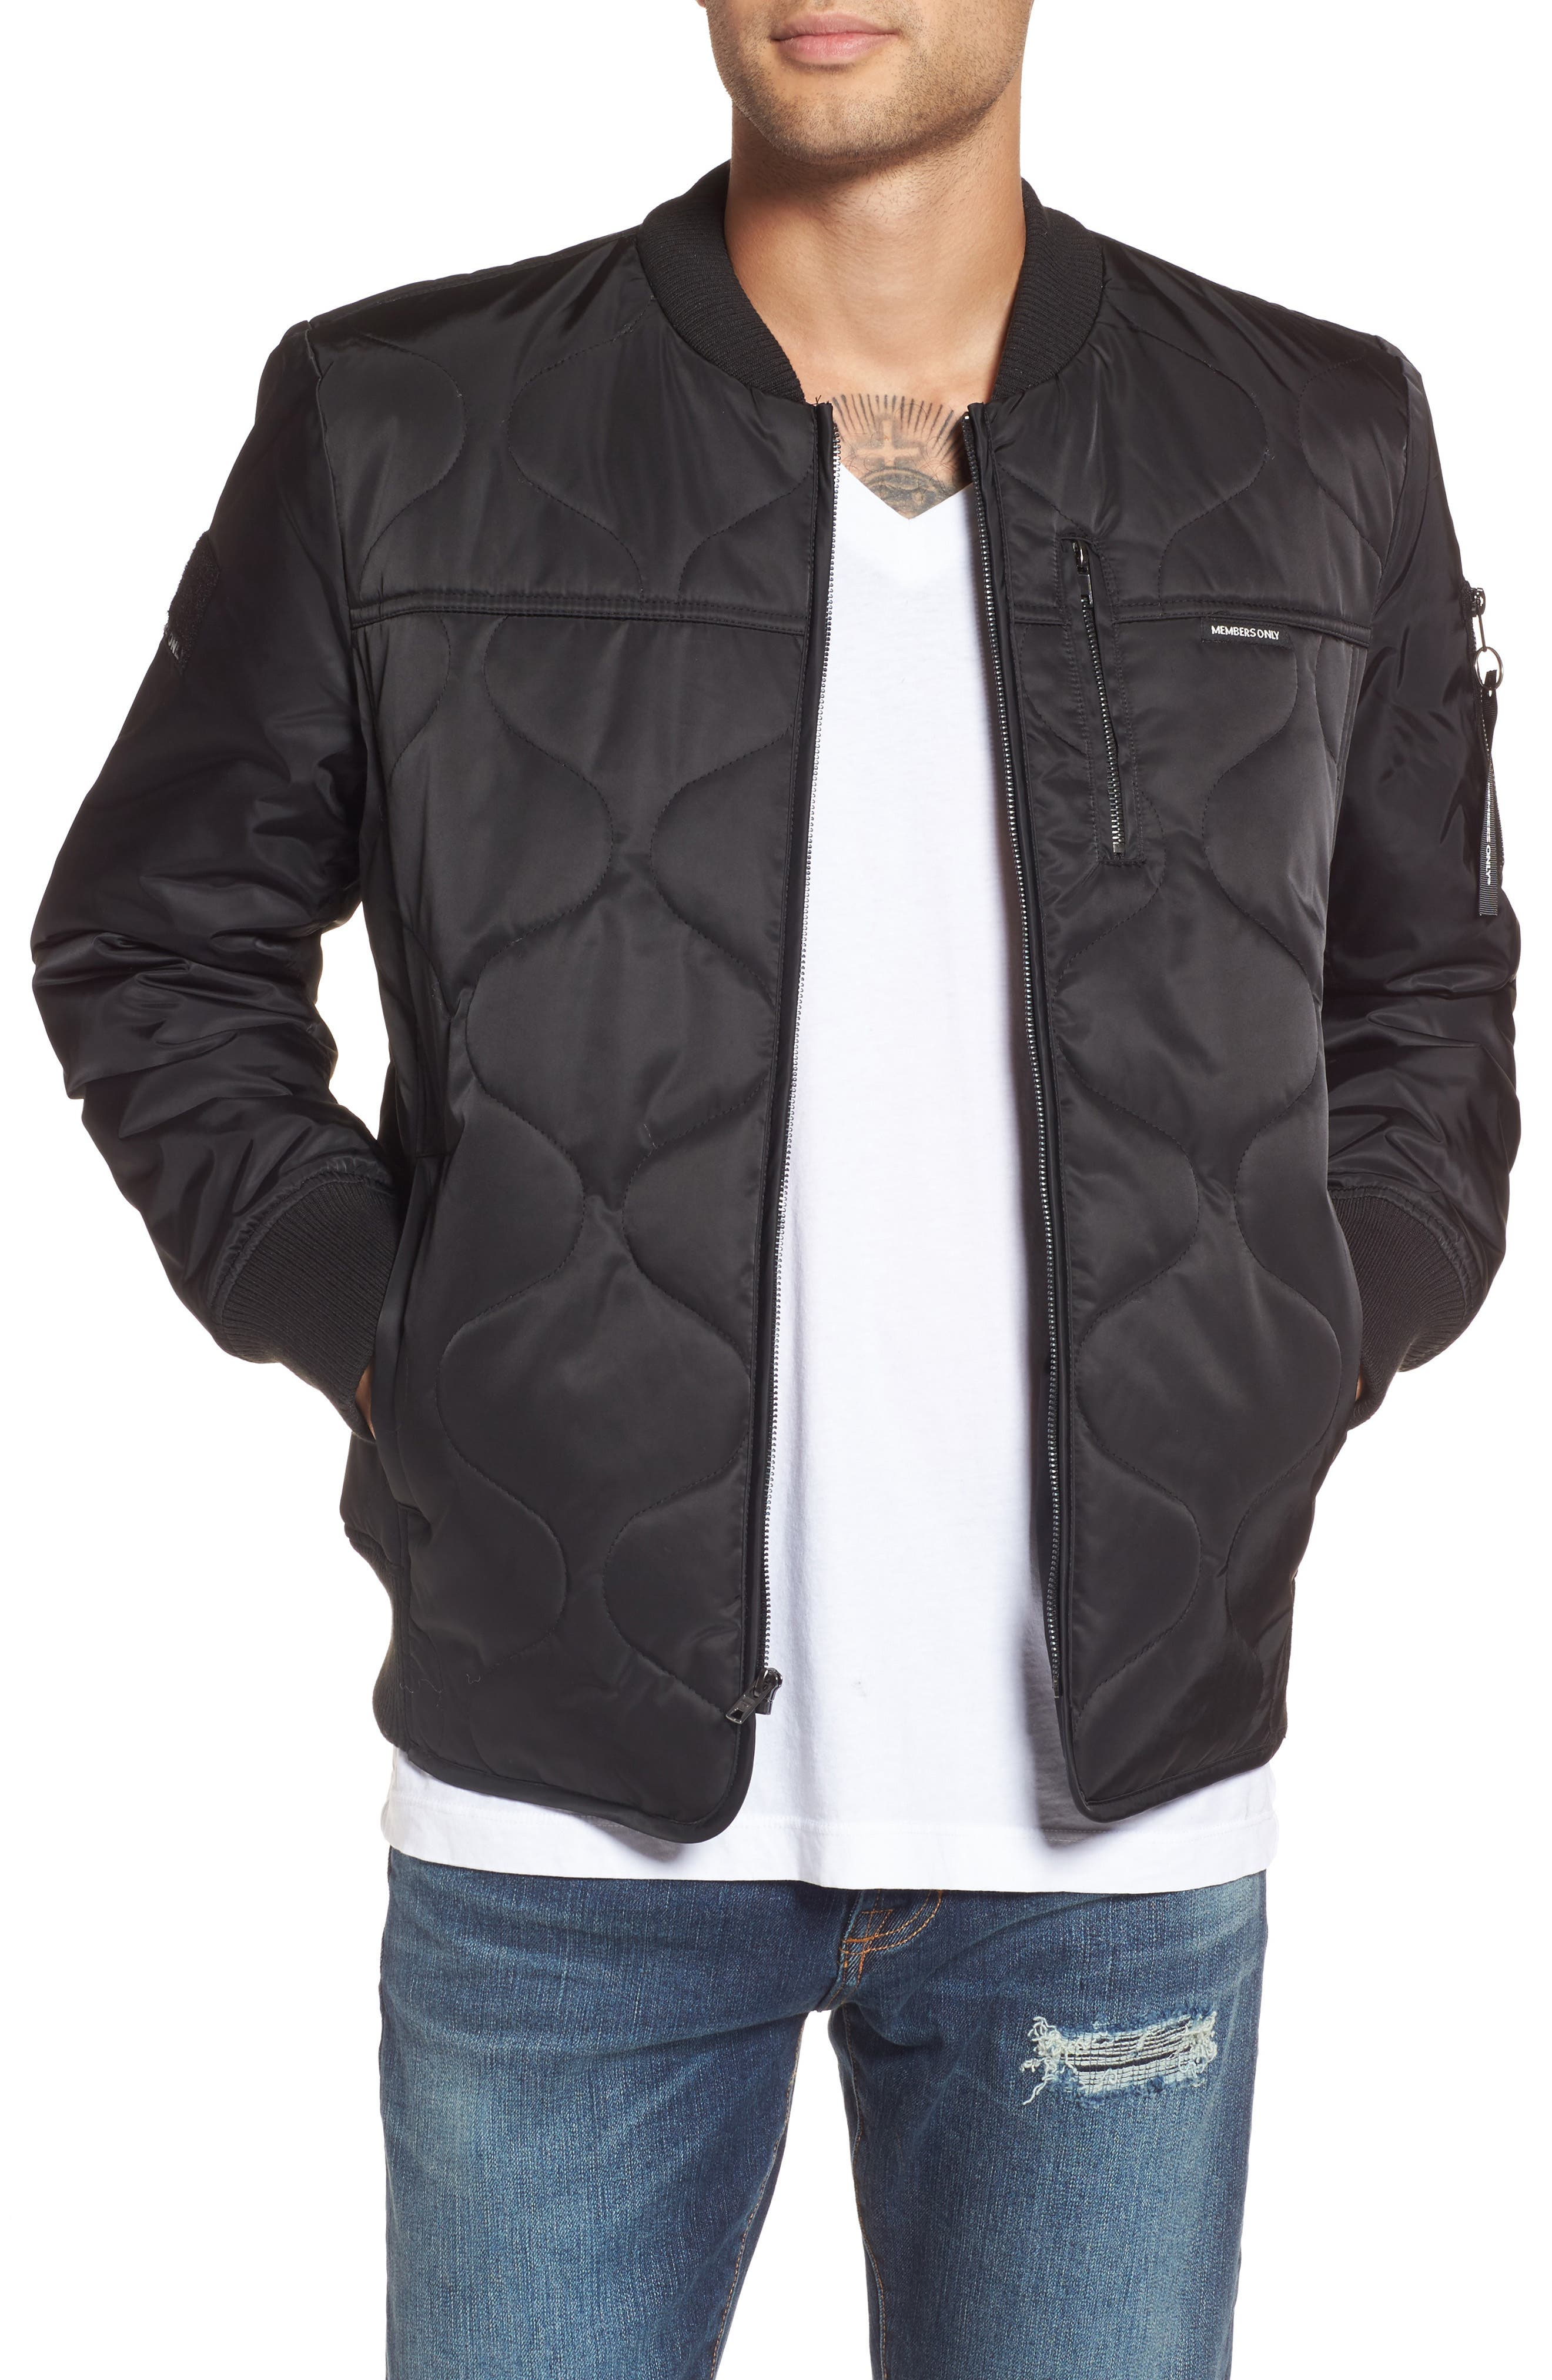 Main Image - Members Only Quilted Bomber Jacket